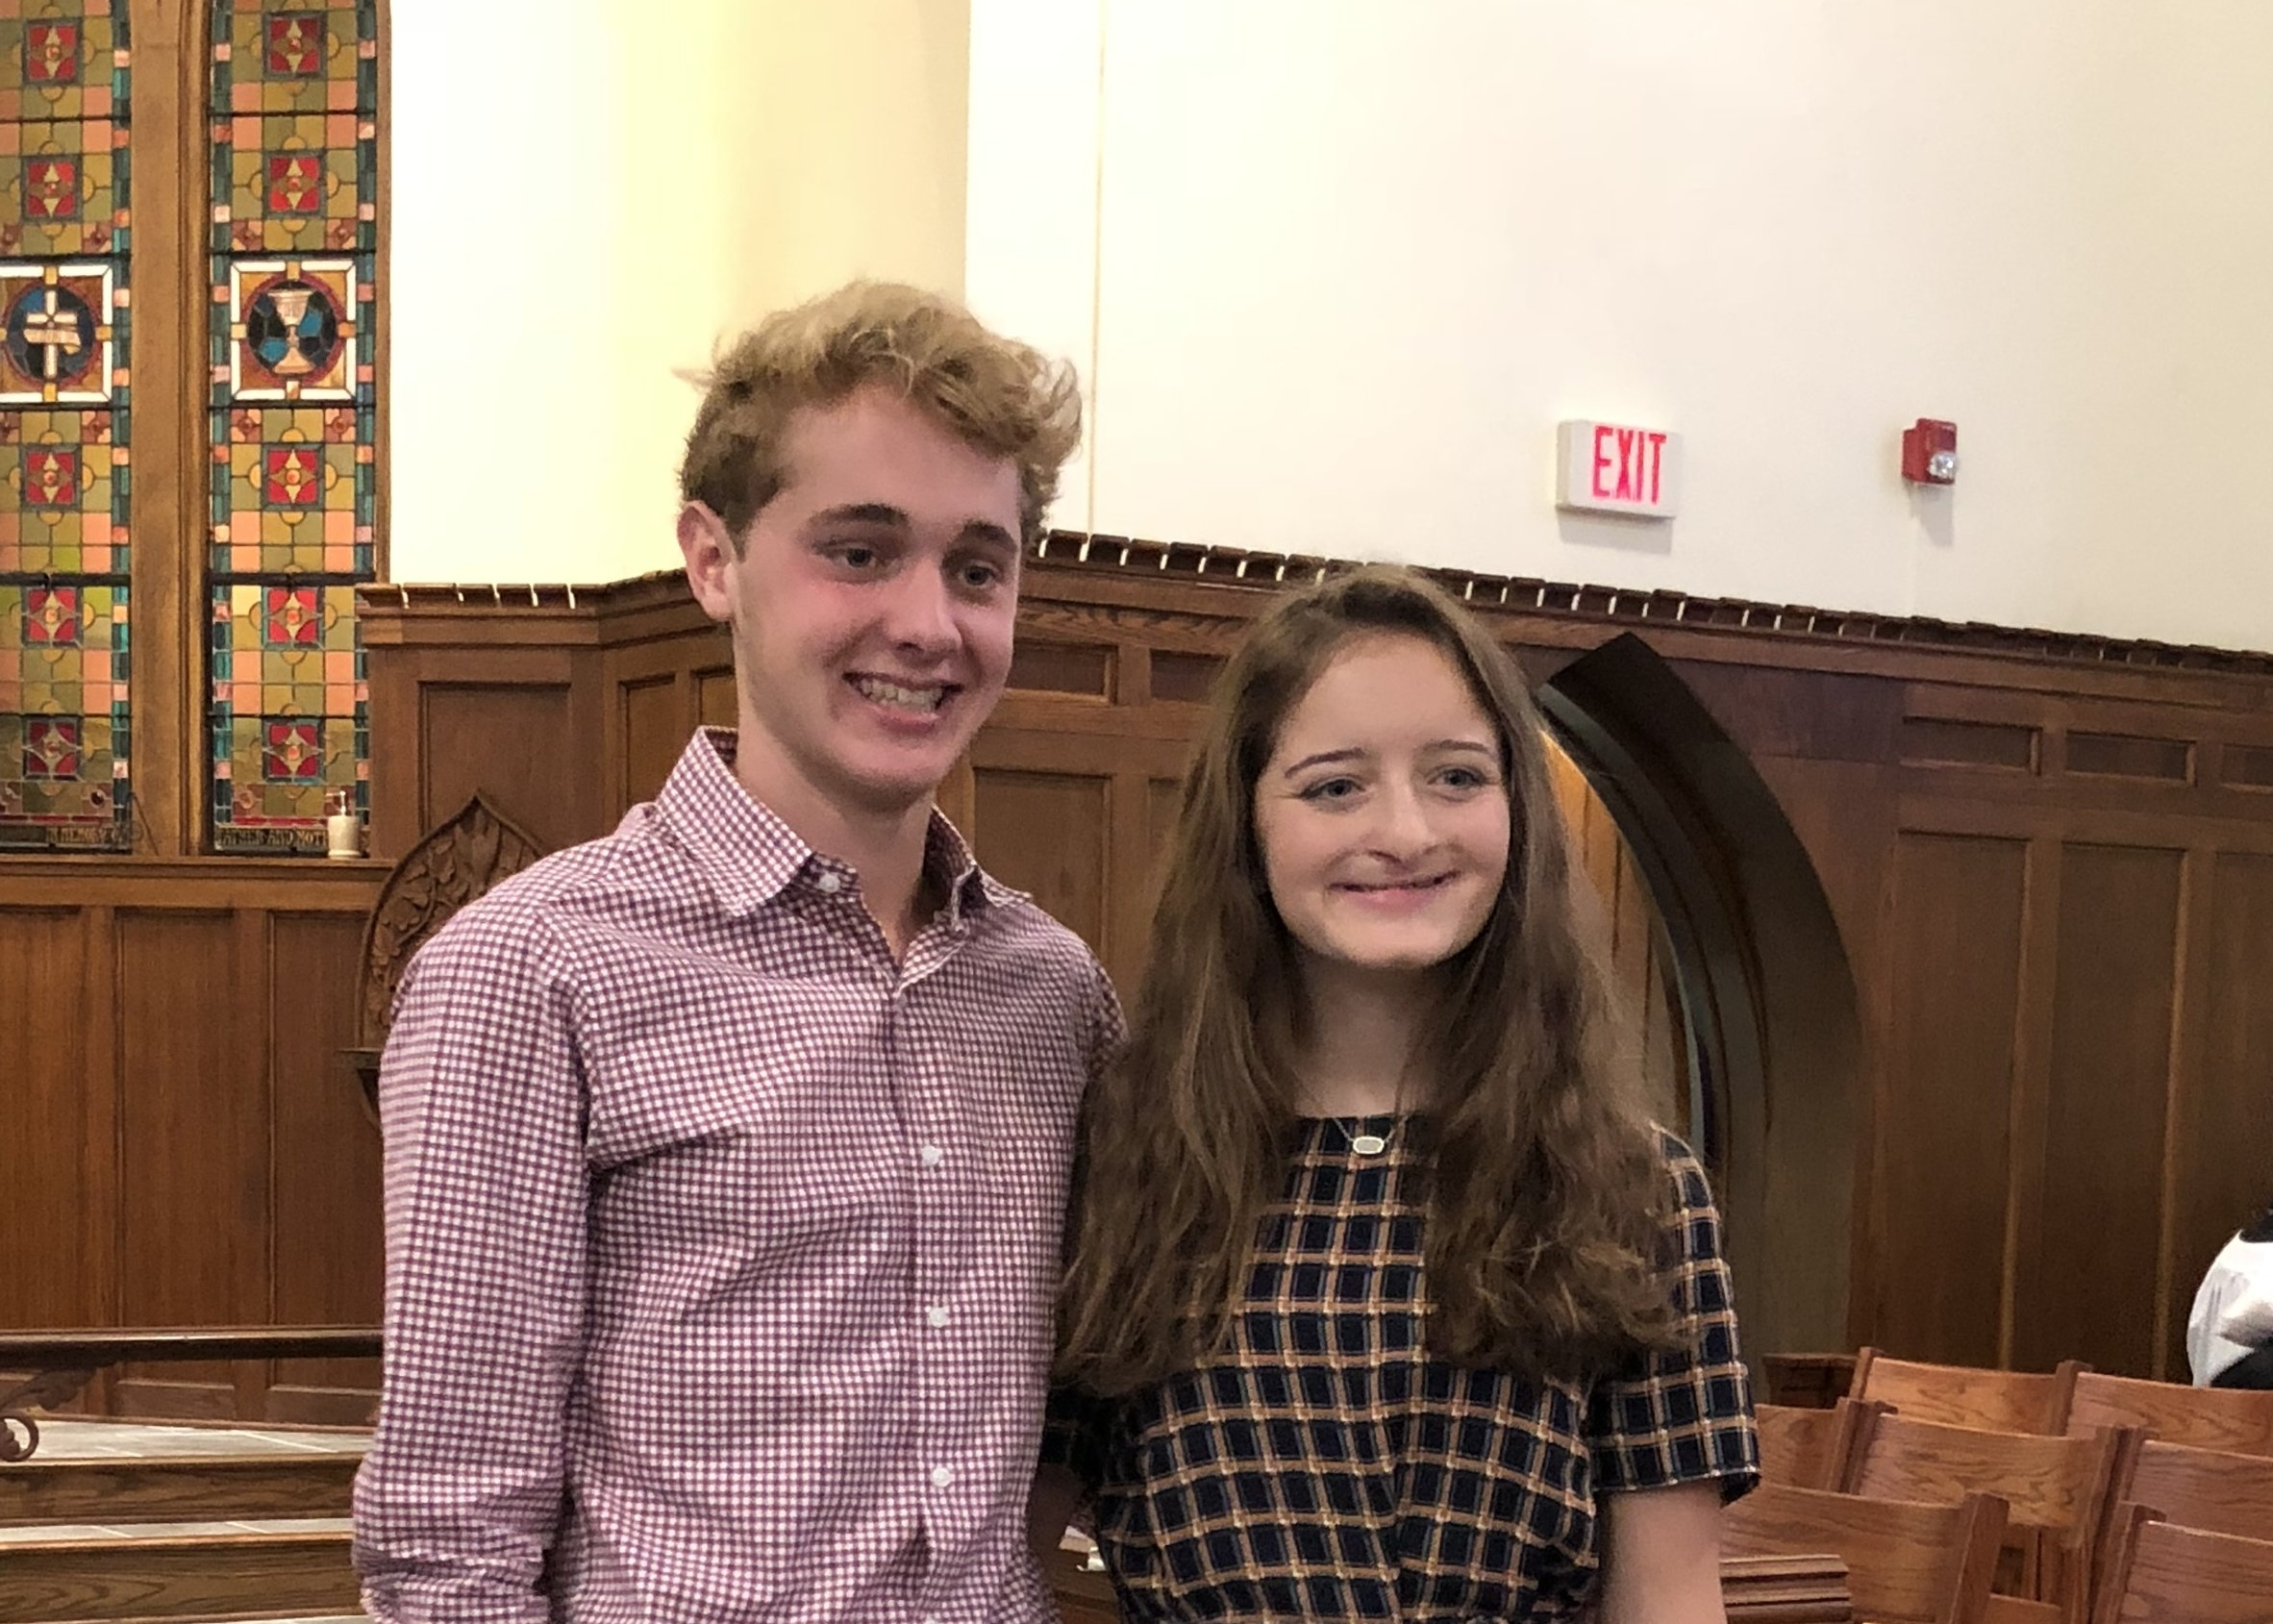 Harry Shook (right) and his sister Frances after their Confirmation at St. John's on Sunday, October 7th, 2018.